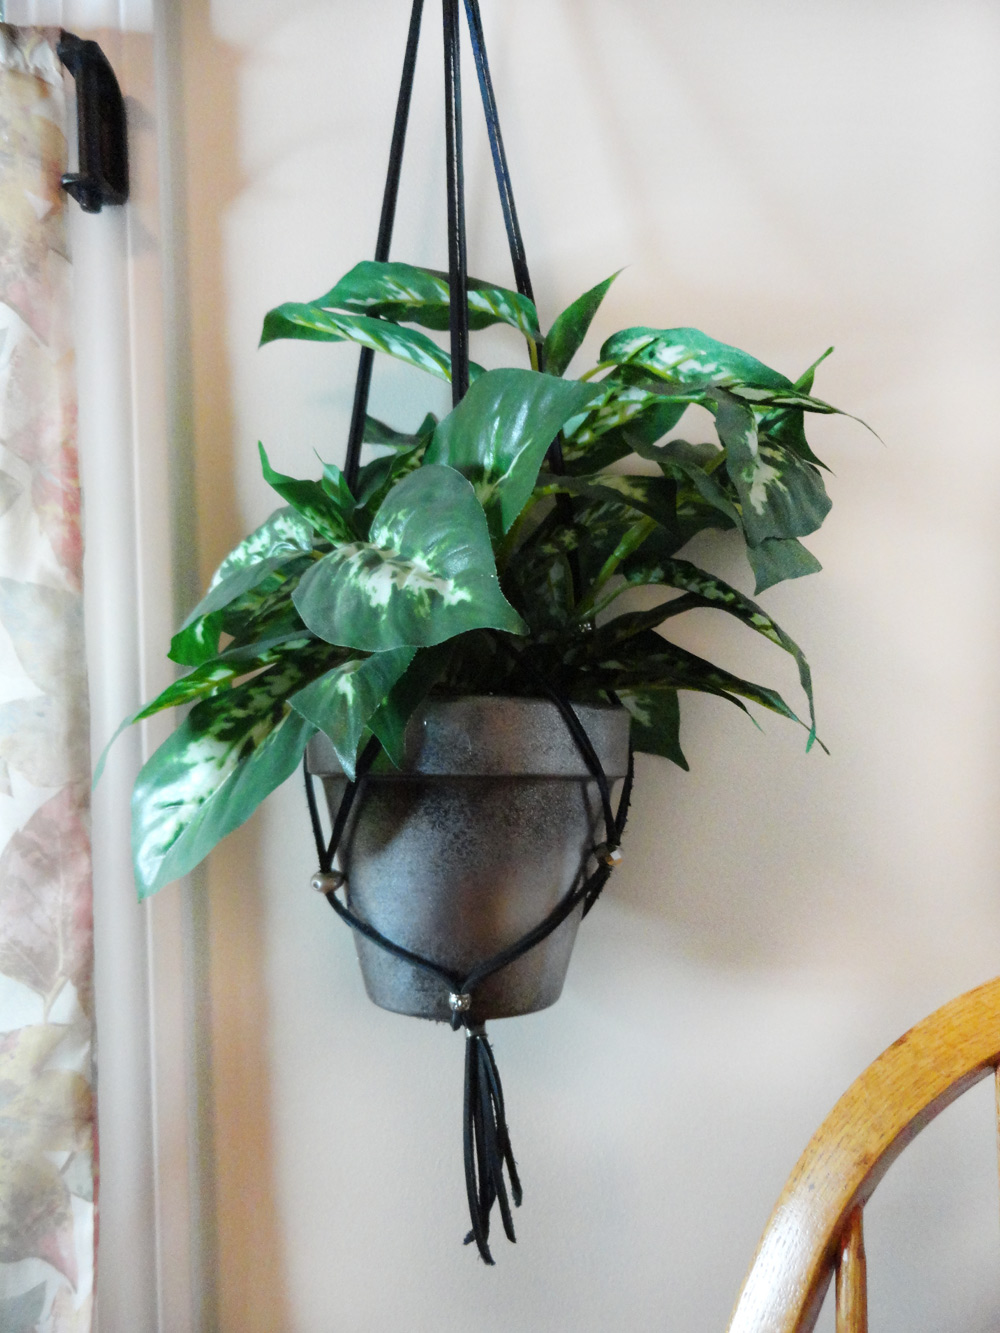 Indoor Hanging Plants Costa Farms Shares Tips For Adding